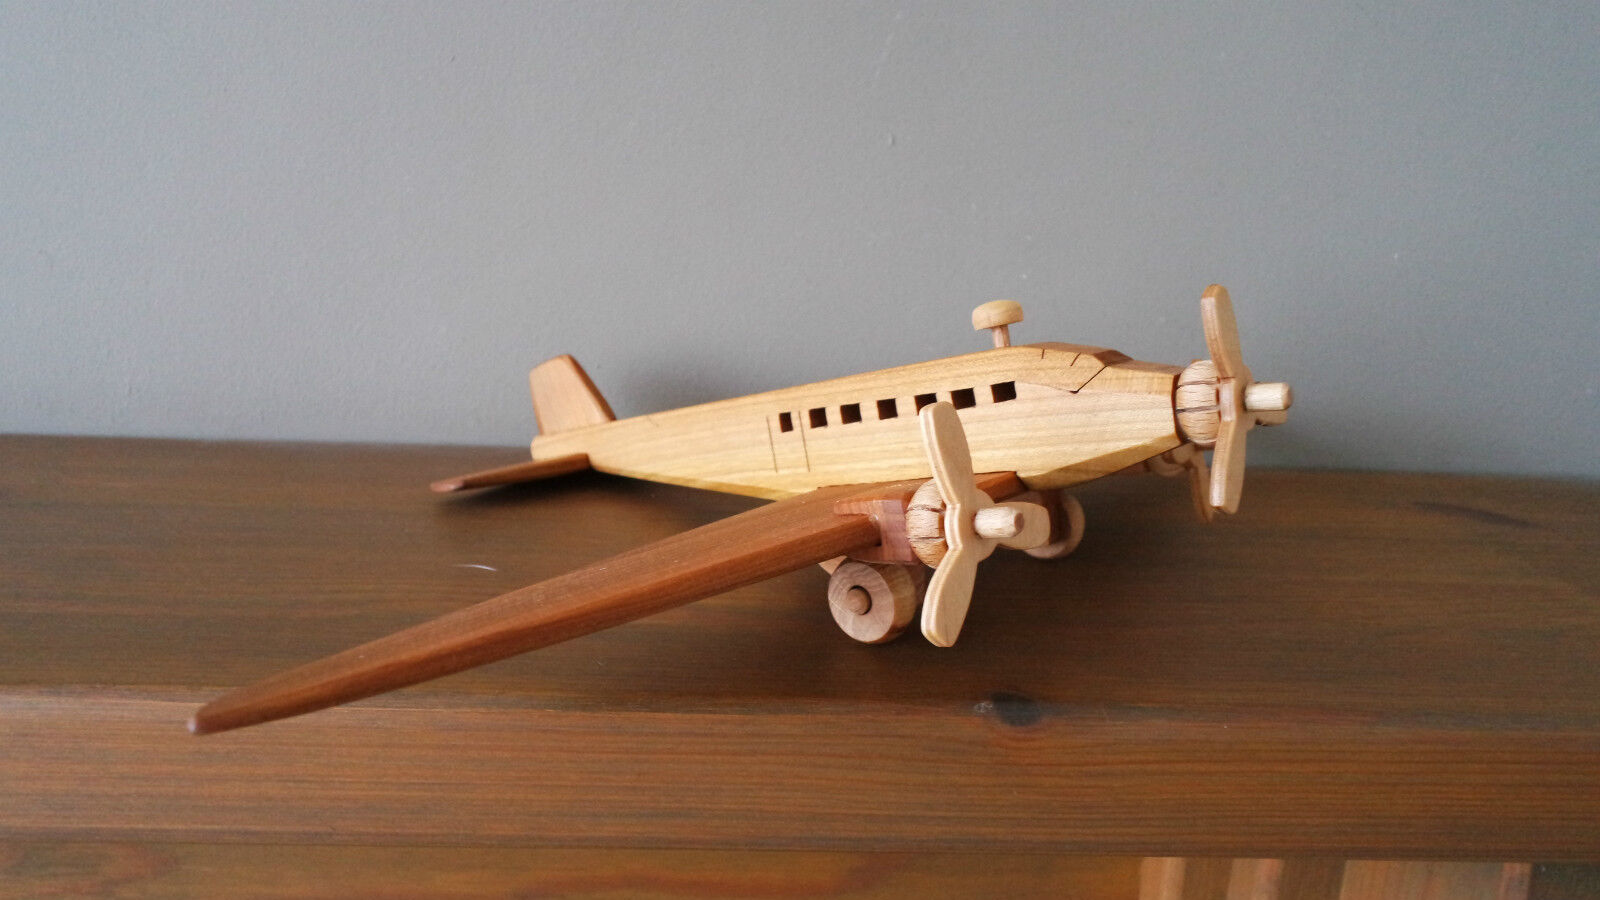 Wooden toy, plane Ju-52 - vintage style, handmade, High quality